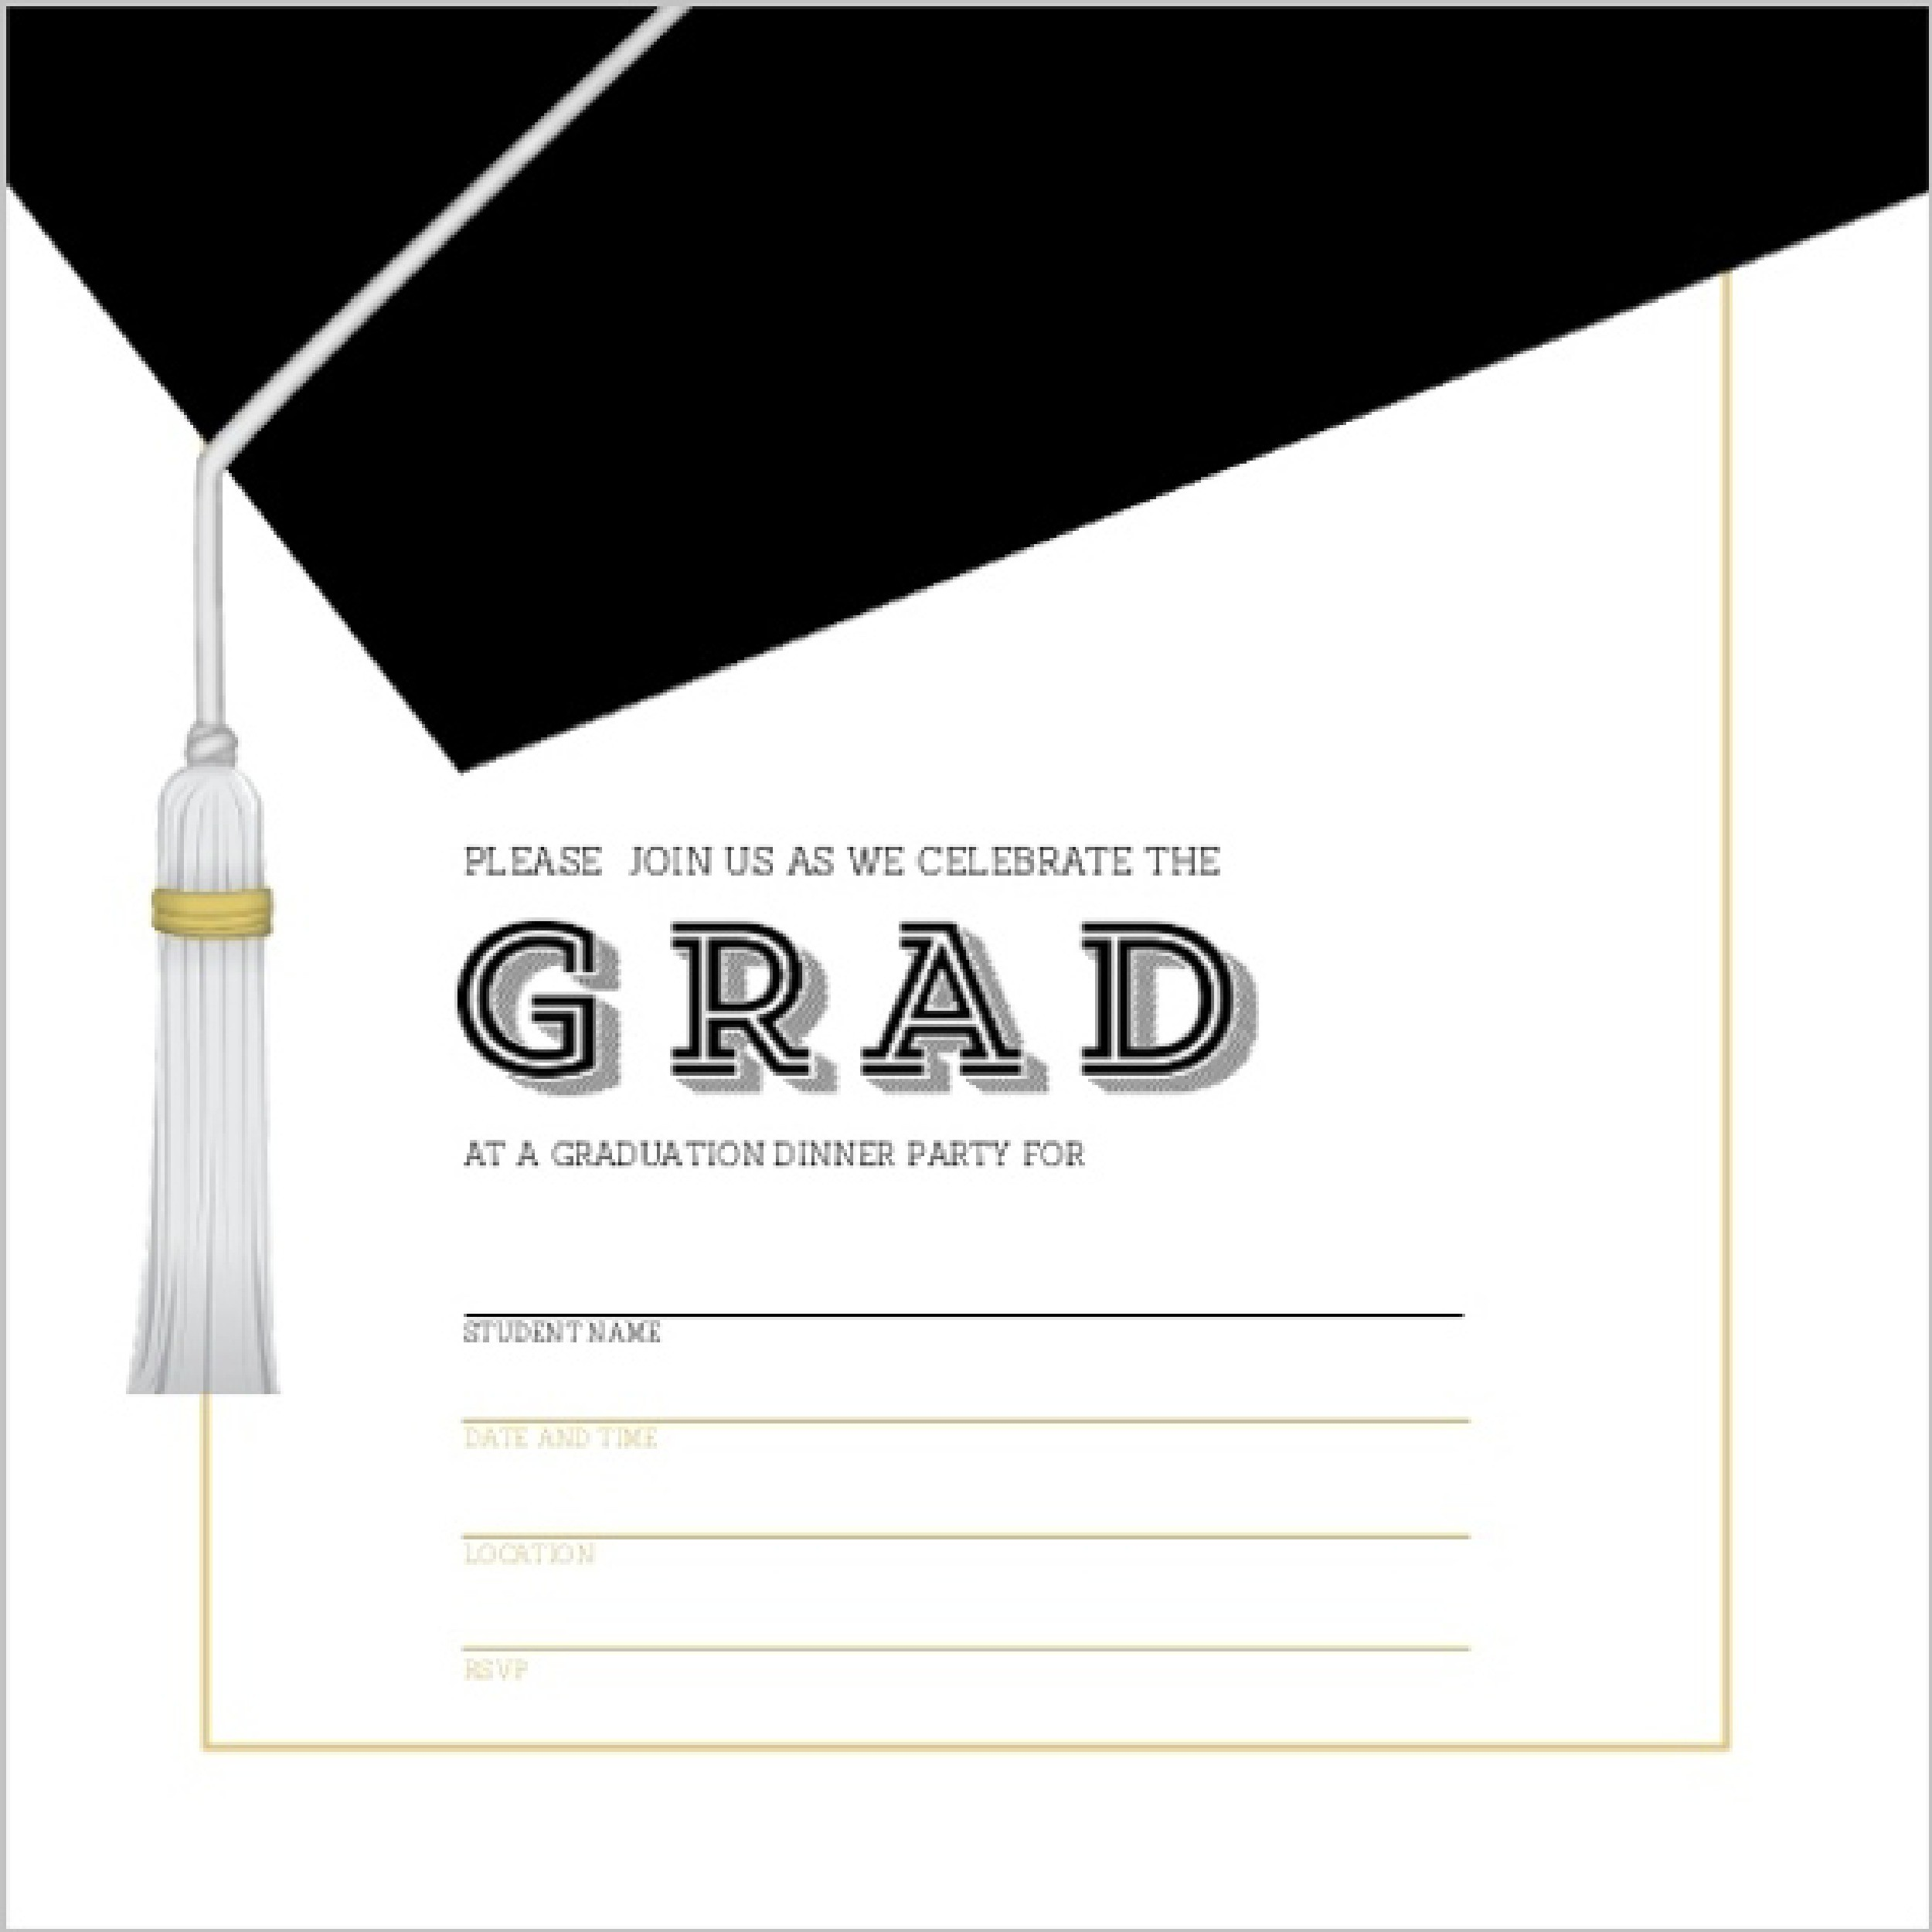 Graduation invitation design templates yeniscale graduation invitation design templates stopboris Gallery